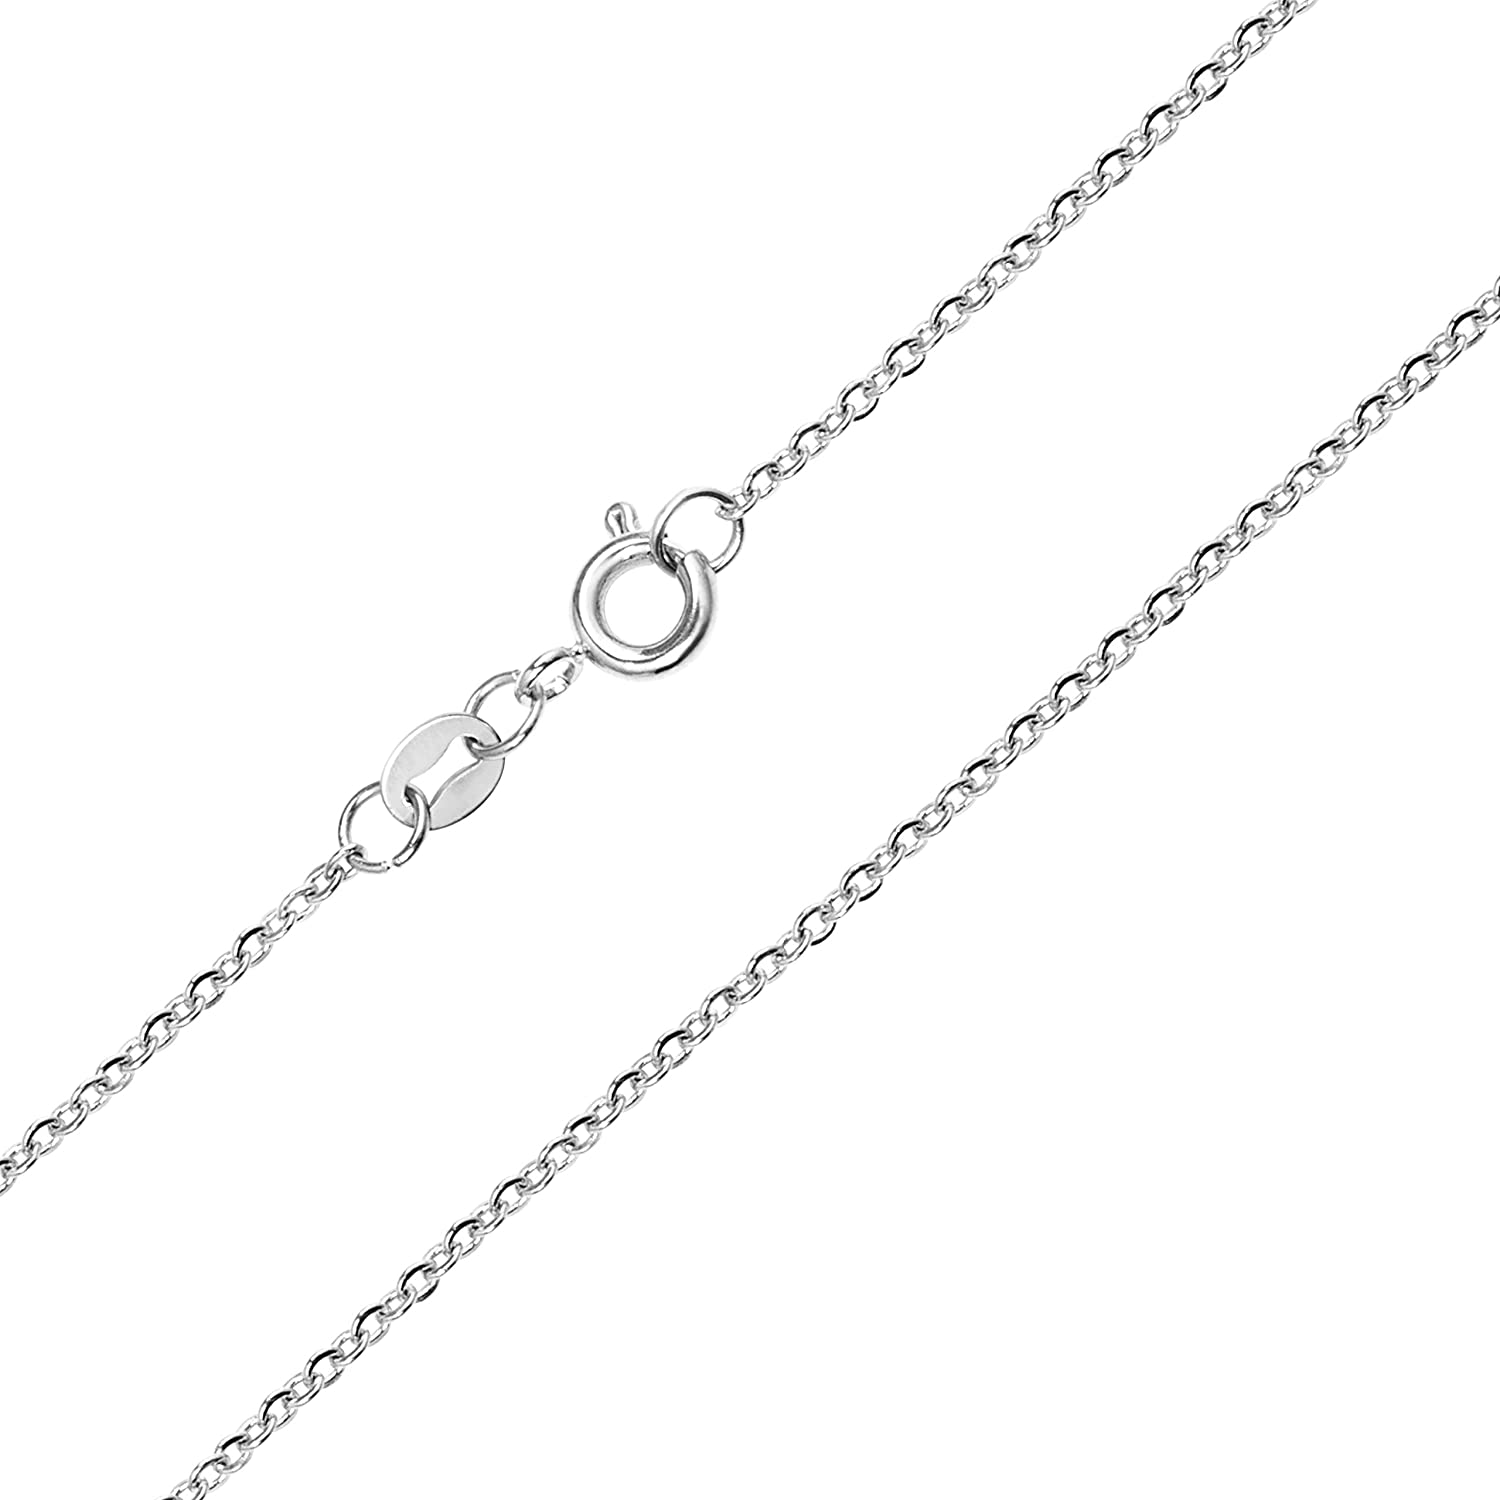 KISPER Sterling Silver Over Stainless Steel 1.5mm Thin Cable Link Chain Necklace 14-30 inches